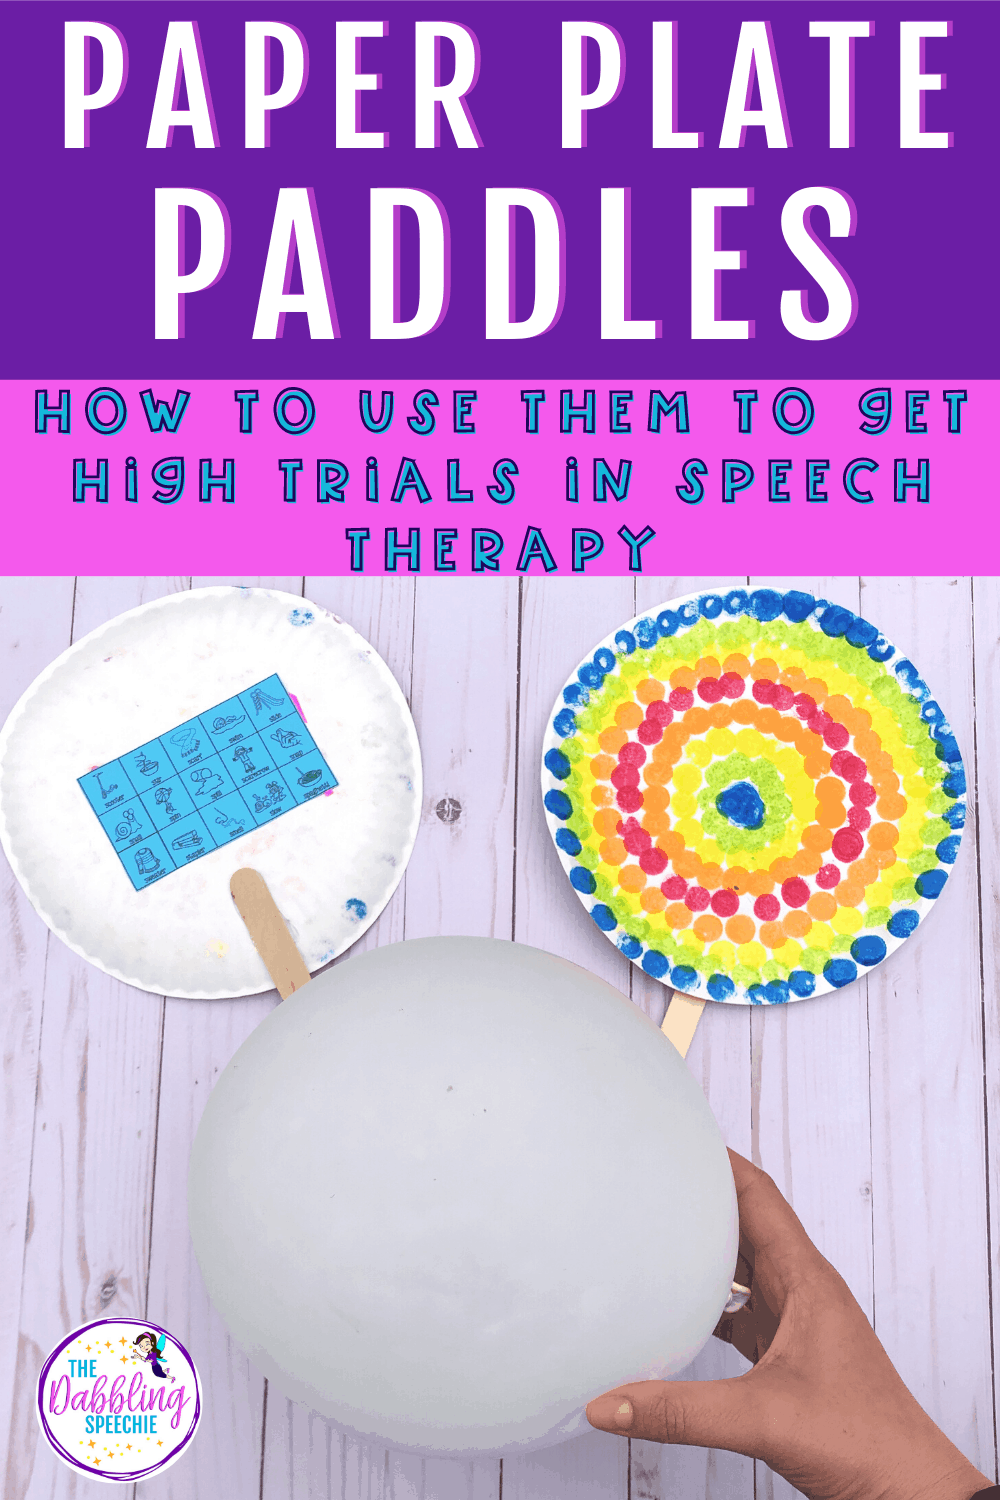 paper plate paddle craft for speech therapy that can help you get high trials in your speech sessions. Use this craft to add movement into your speech sound disorder treatment sessions.